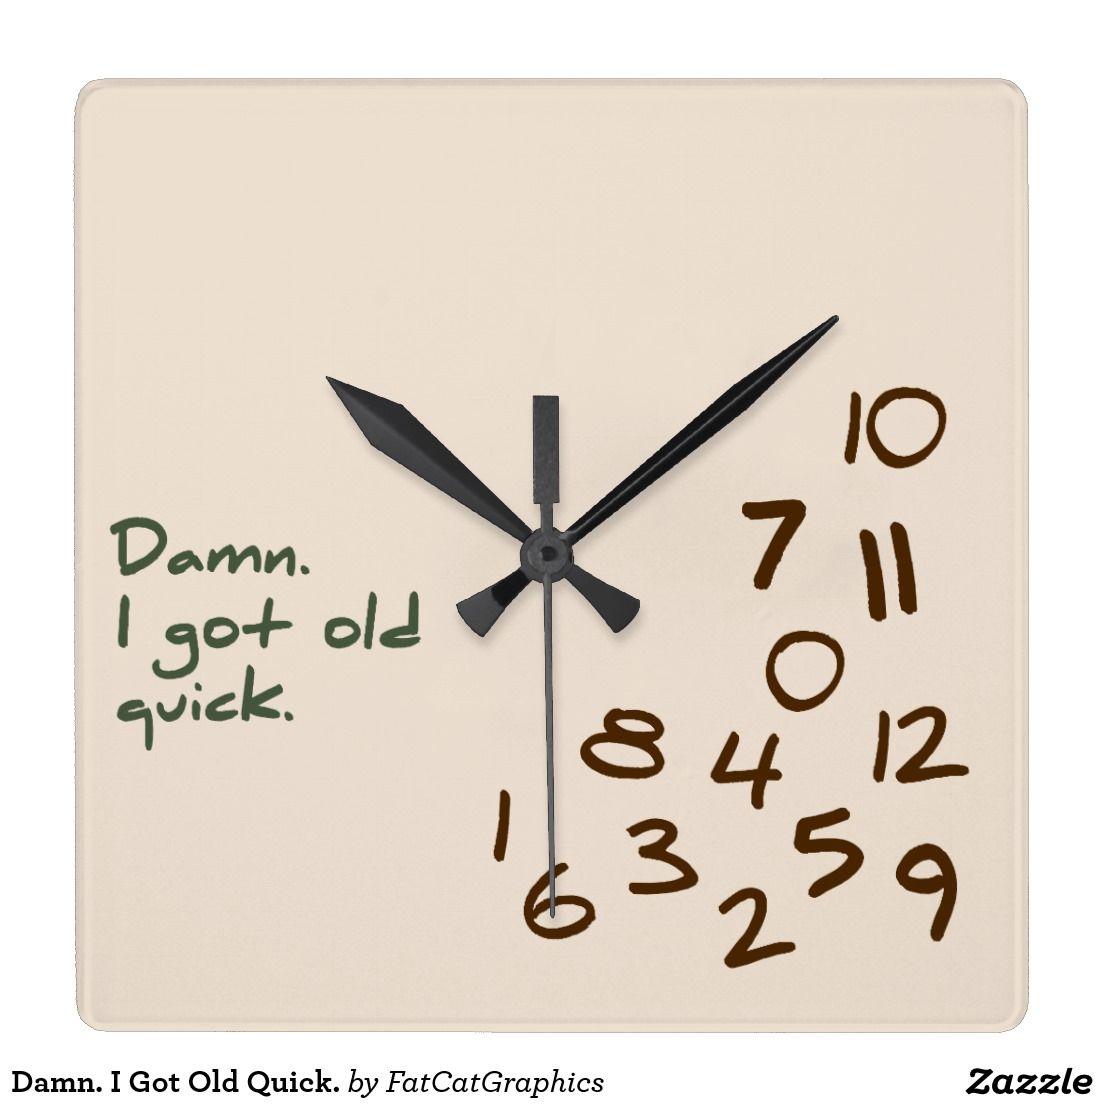 Damn. I Got Old Quick. Square Wall Clock. Funny clock that some of us will appreciate more than others. Damn. I got old quick. The numbers are jumbled in the bottom corner to emphasize the humorous message. Great gift for all the old farts in your life. Feel free to message me with custom design or color requests.